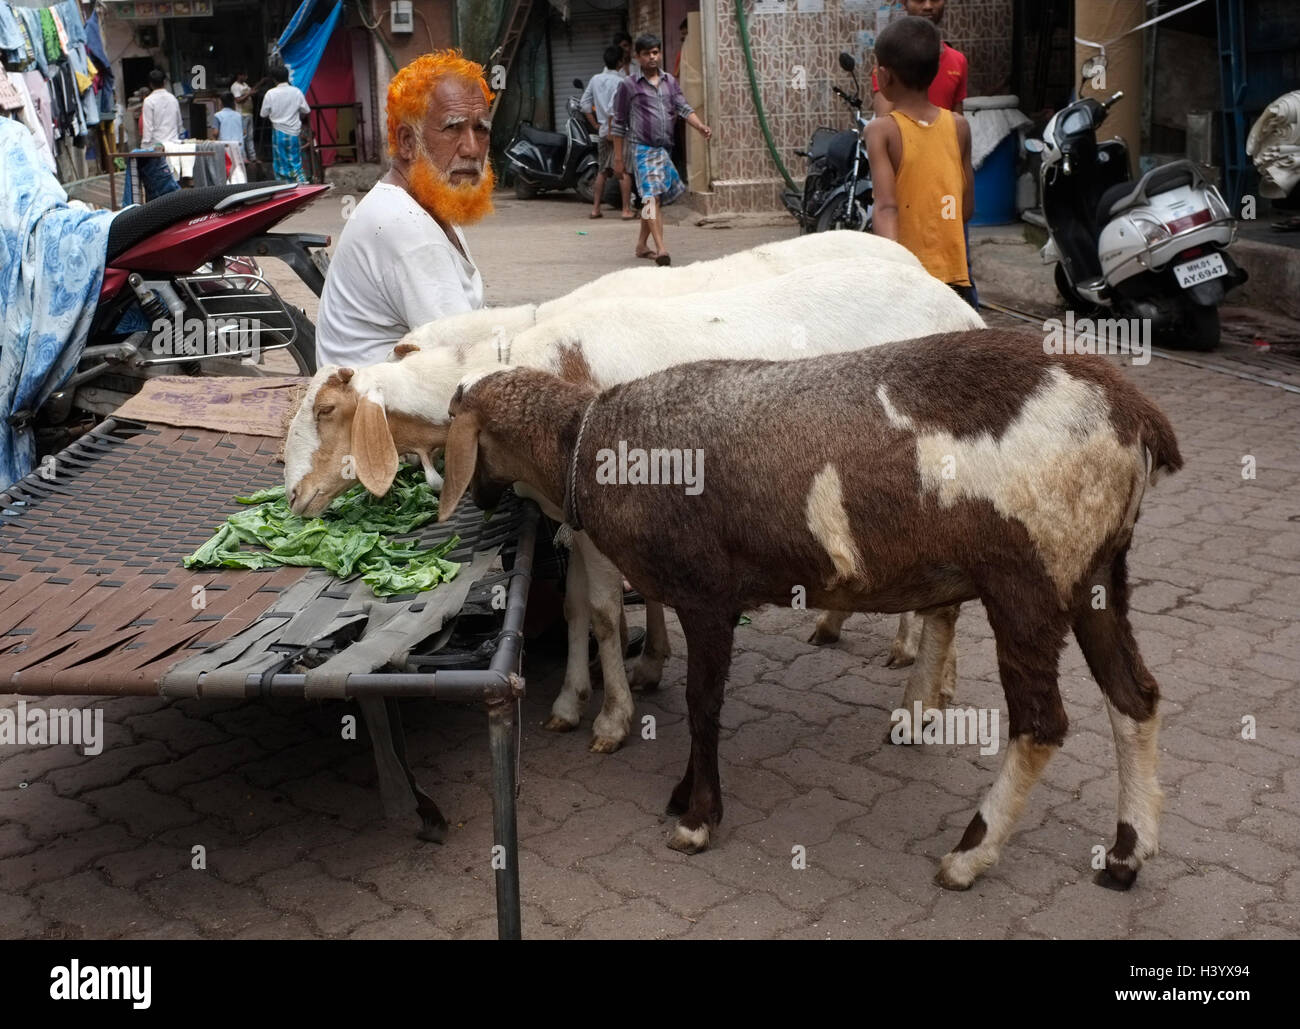 goats eating on the streets if dharavi, with their owner next to them. Street scenes Mumbai, India - Stock Image